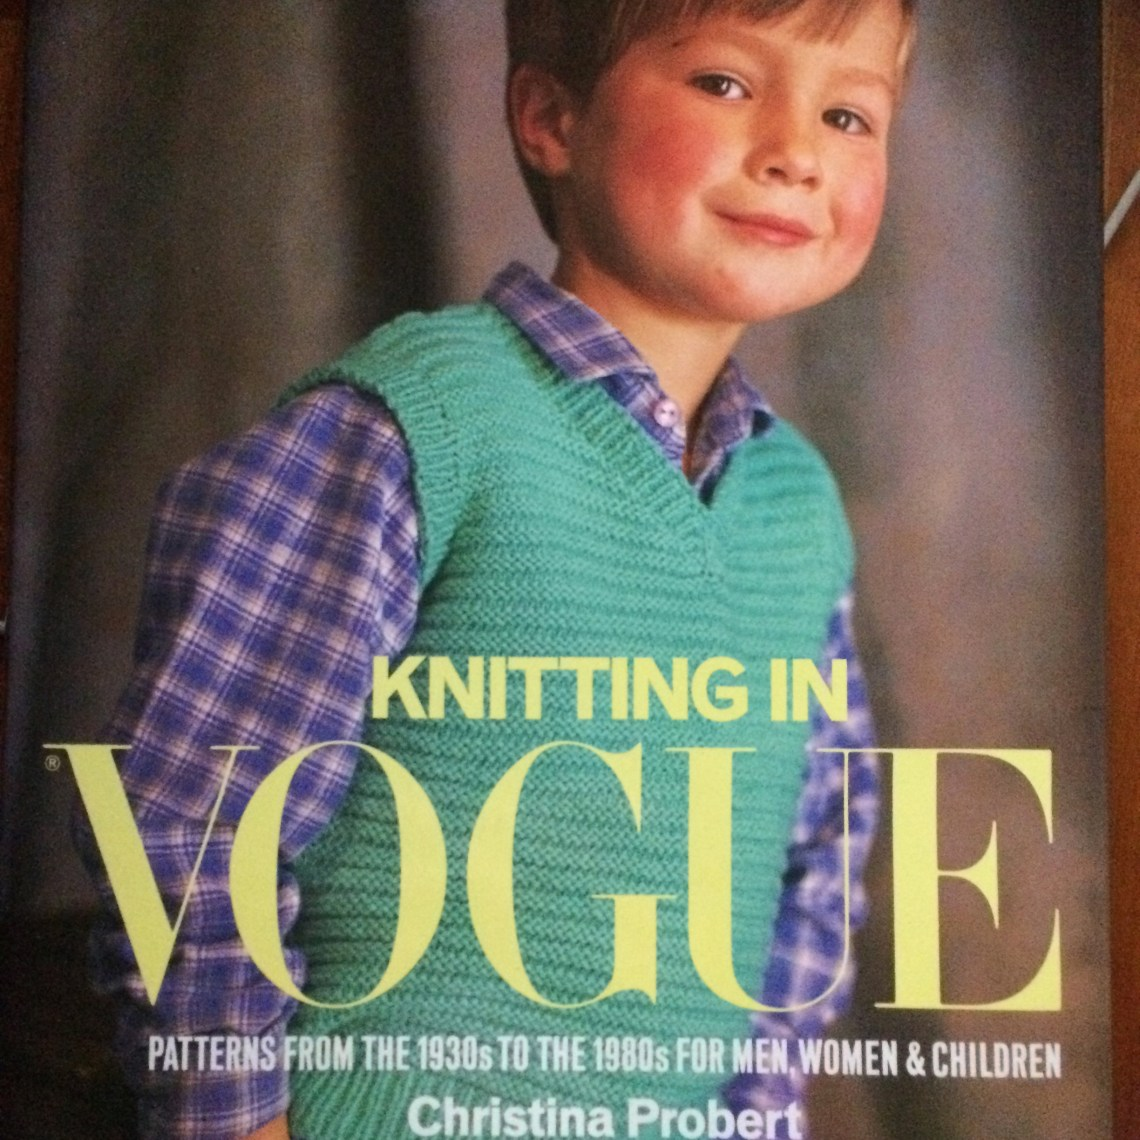 Knitting in Vogue book